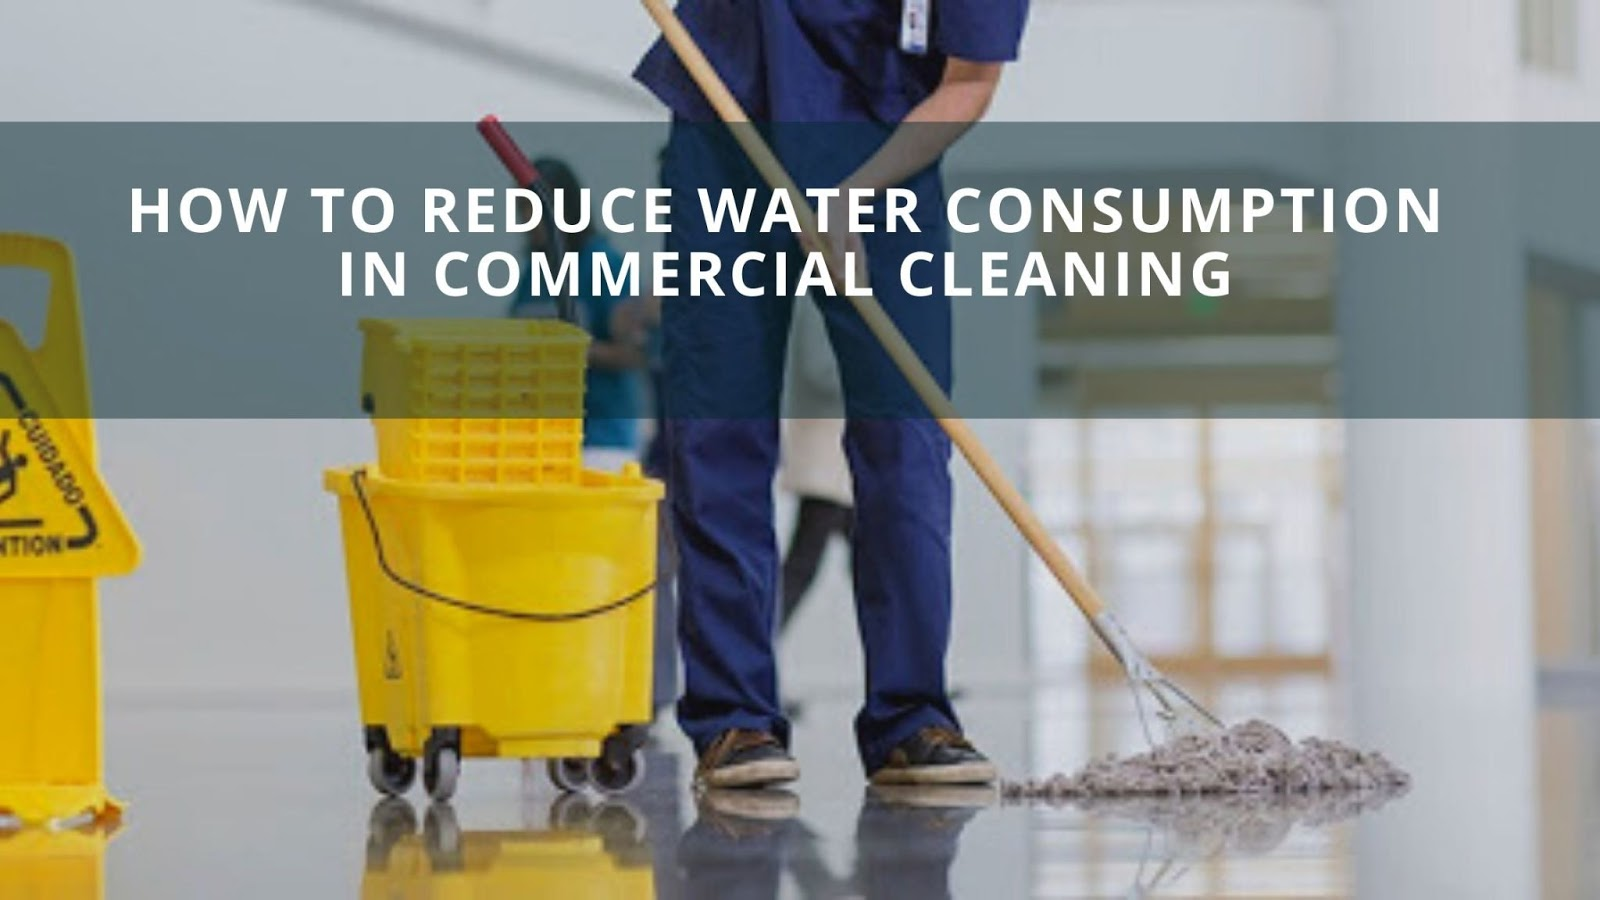 How To Reduce Water Consumption In Commercial Cleaning